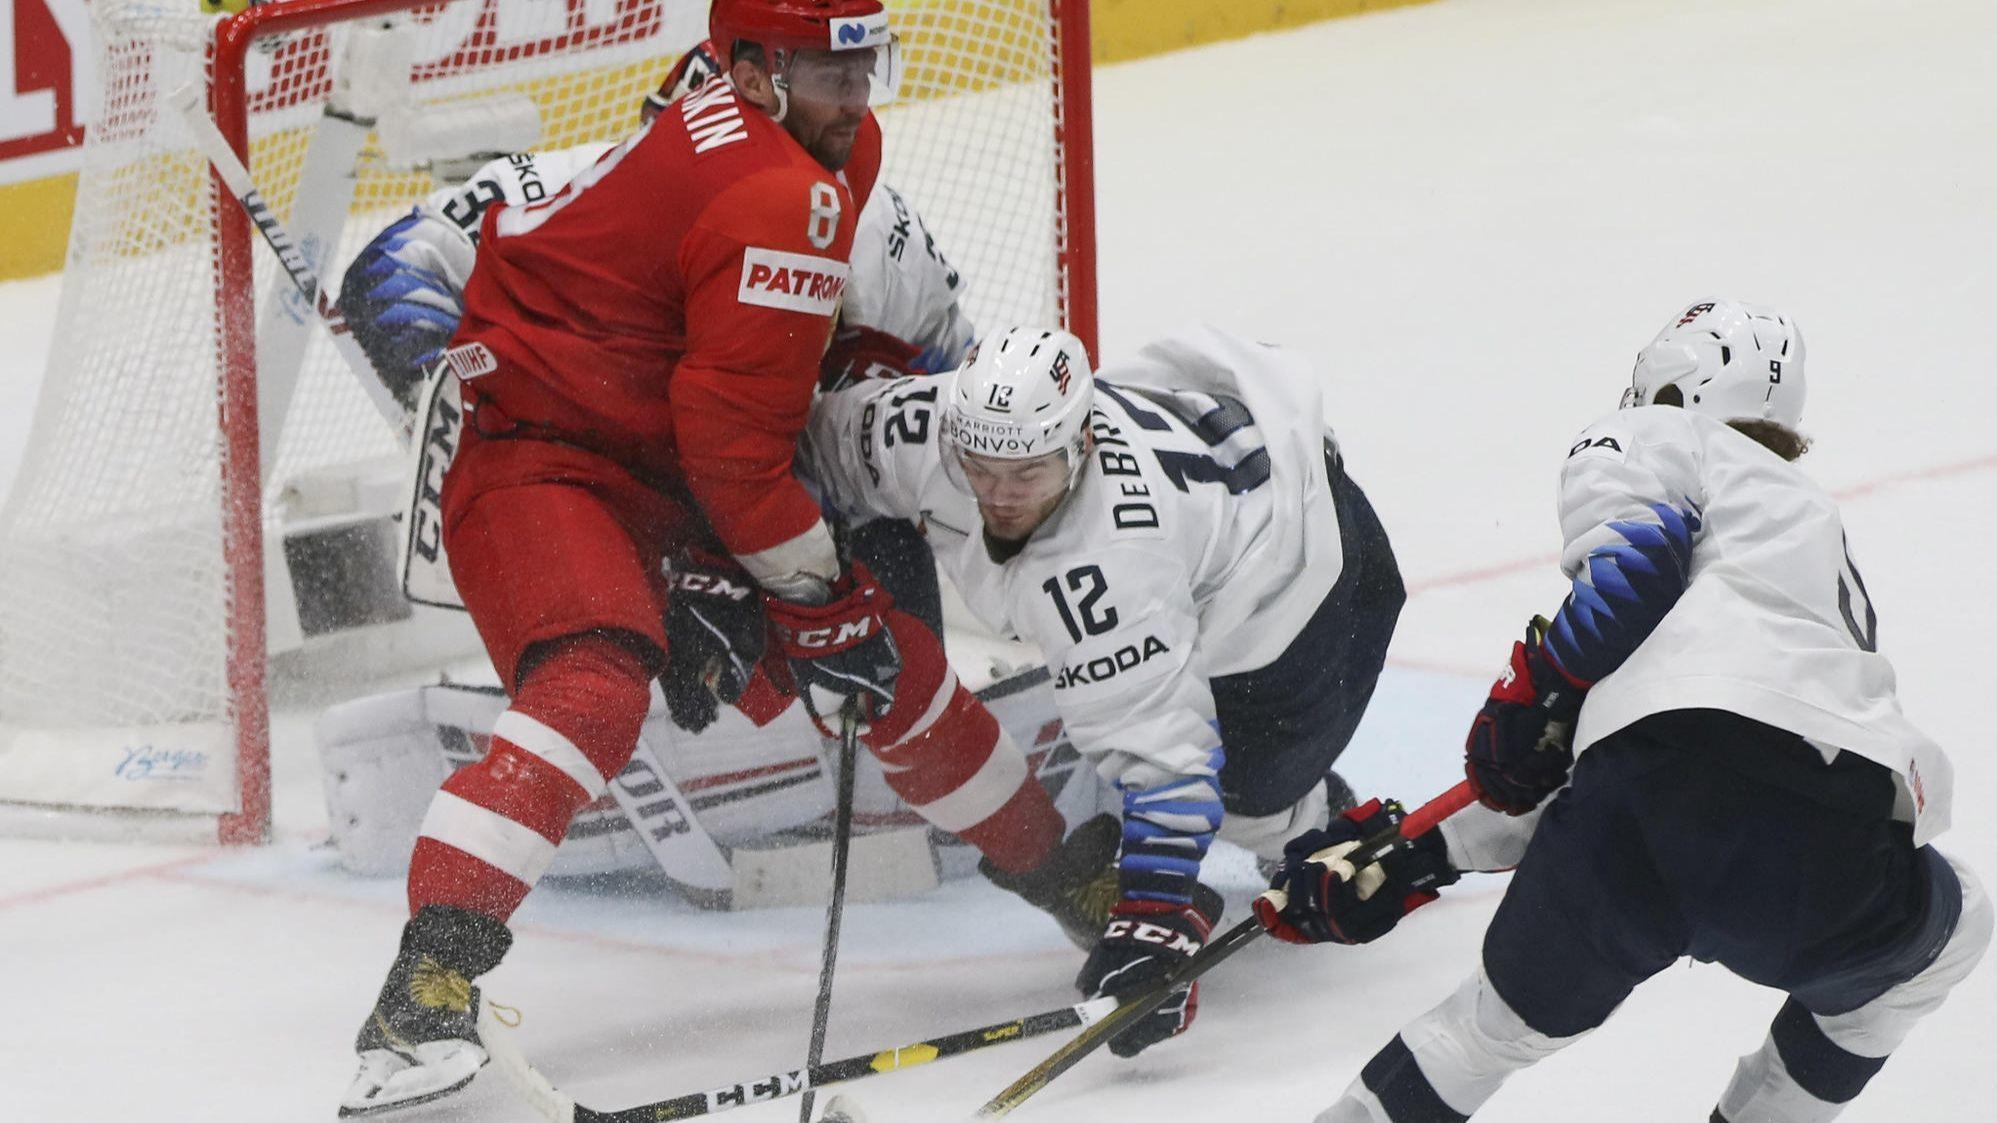 Alex DeBrincat's goal, Patrick Kane's 2 assists not enough as U.S. falls to Russia in world hockey championship semifinals